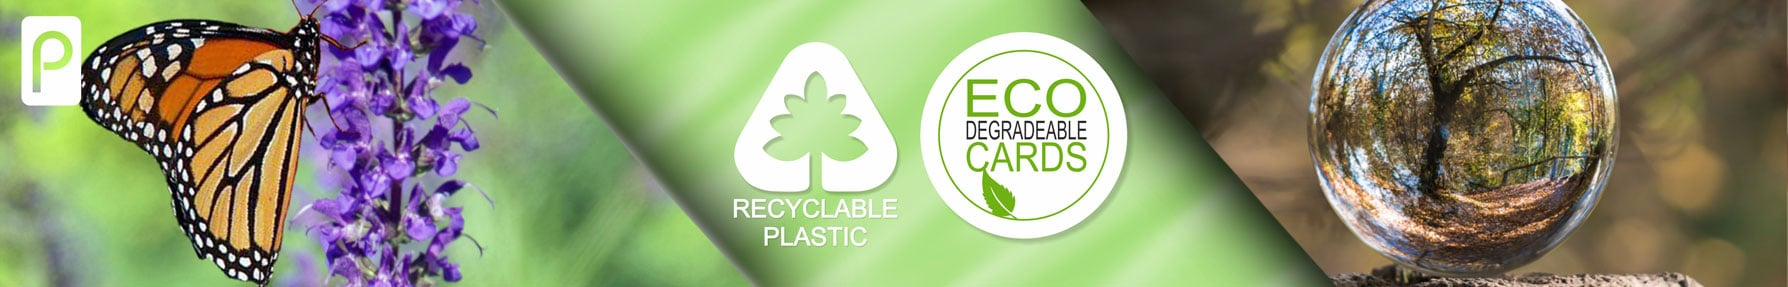 Contactless plastic cards from Premier Plastic cards recyclable and degradable